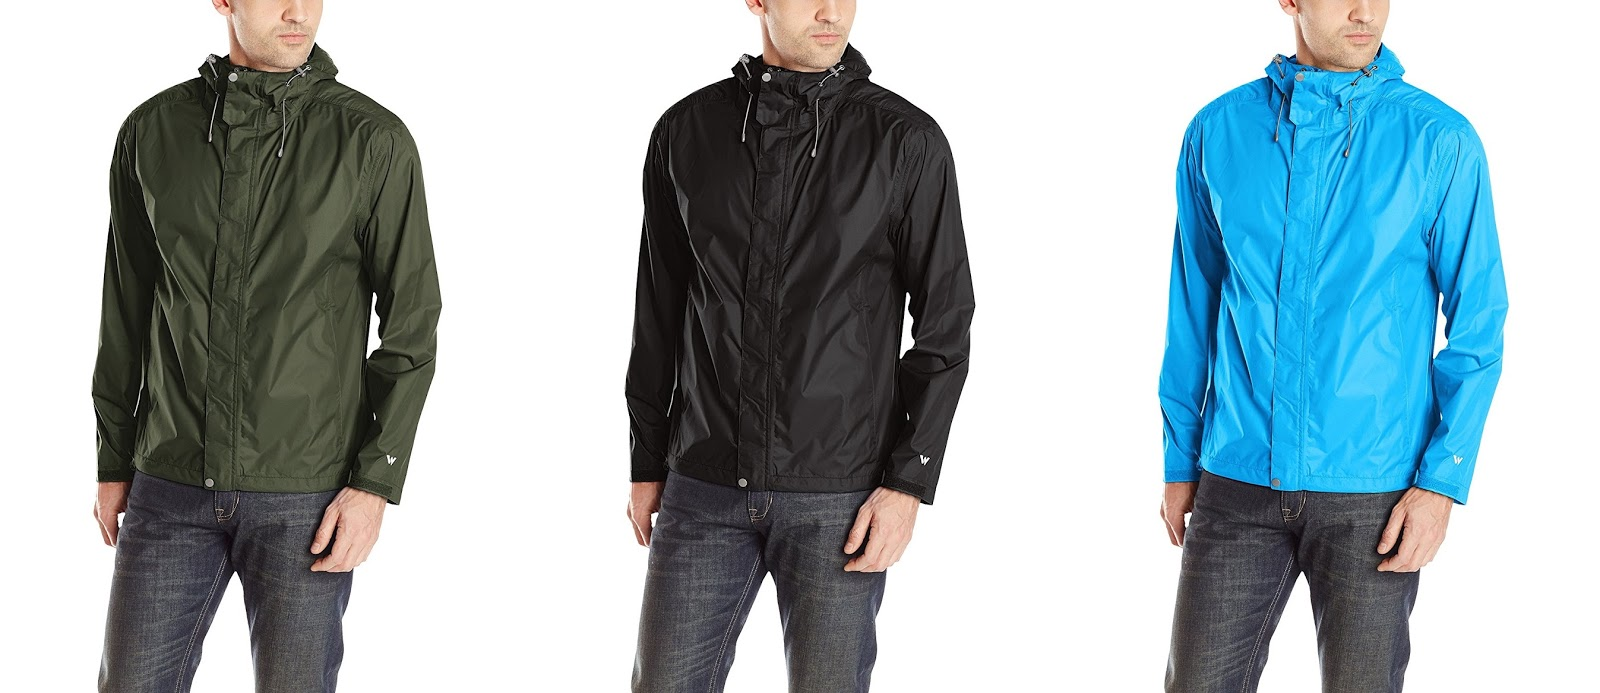 3dd45fe9ff Amazon has this White Sierra Men s Trabagon Rain Jacket on sale for   10- 11